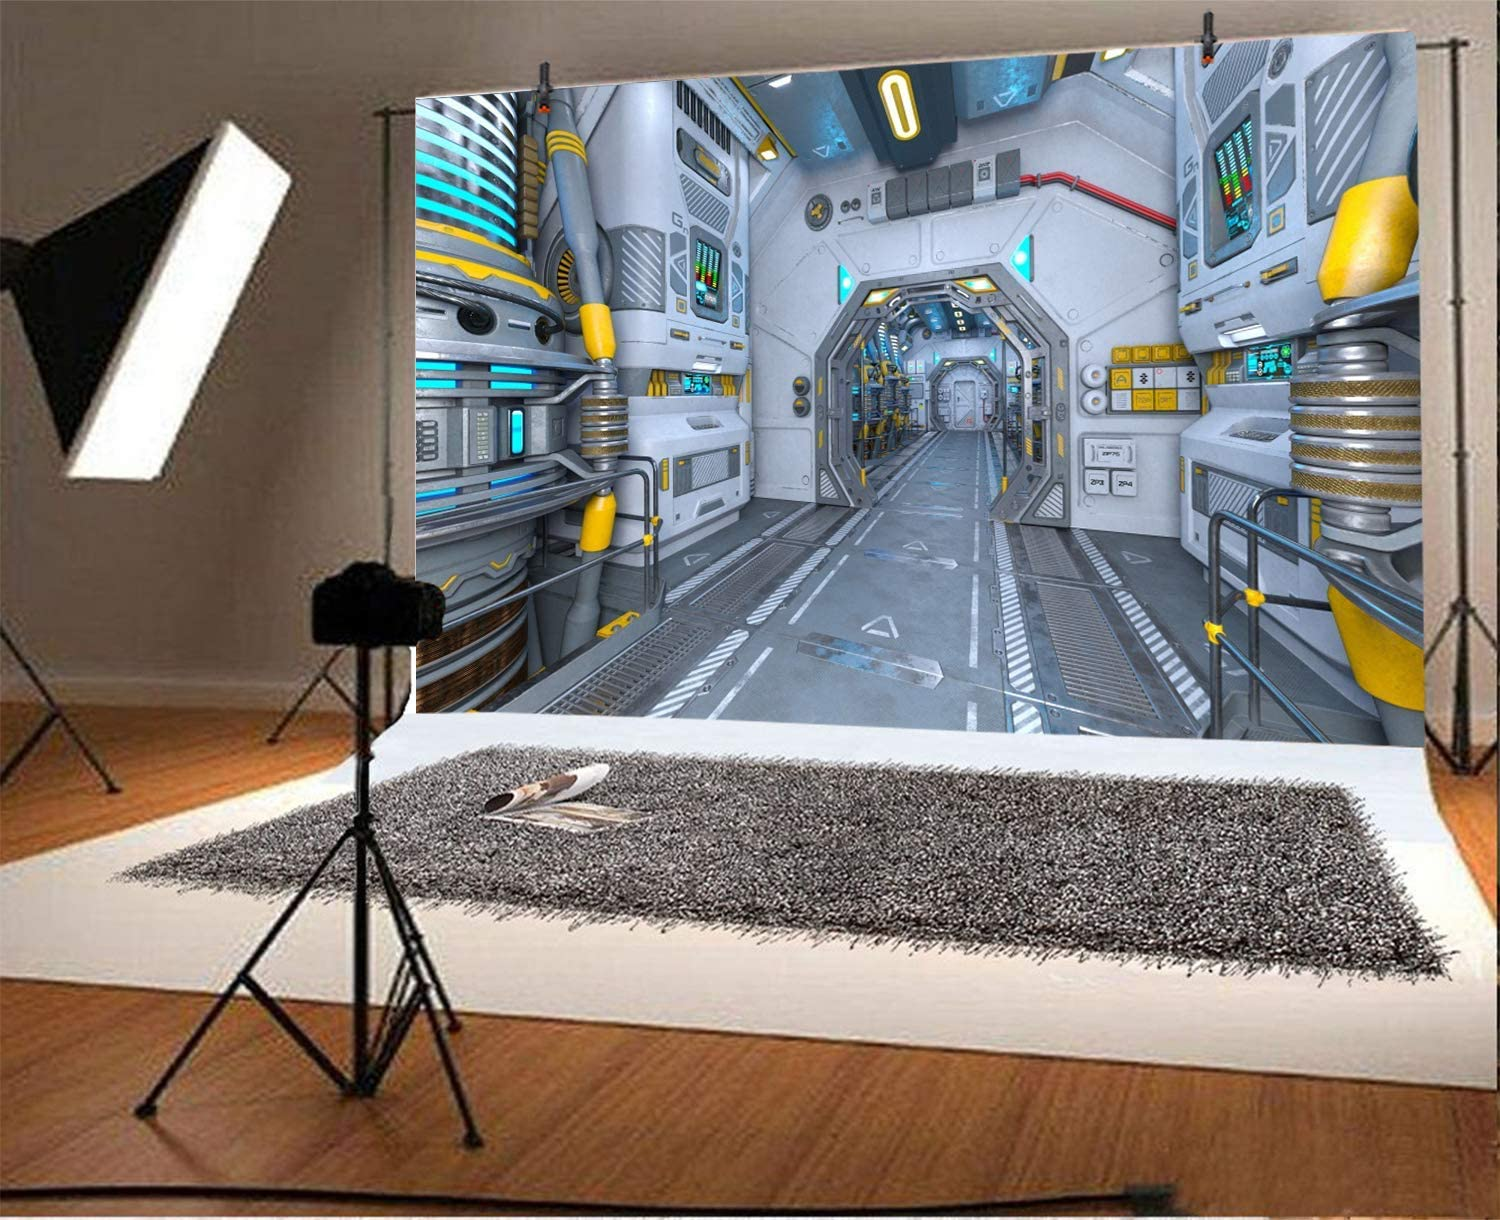 12x8FT Space Station Backdrop Outer Space Explore Capsule Spacecraft Hightech Workplace Universe Reserch Equipments Photo Background Cowboy Birthday Portrait Shoot Studio Vinyl Prop Wallpaper